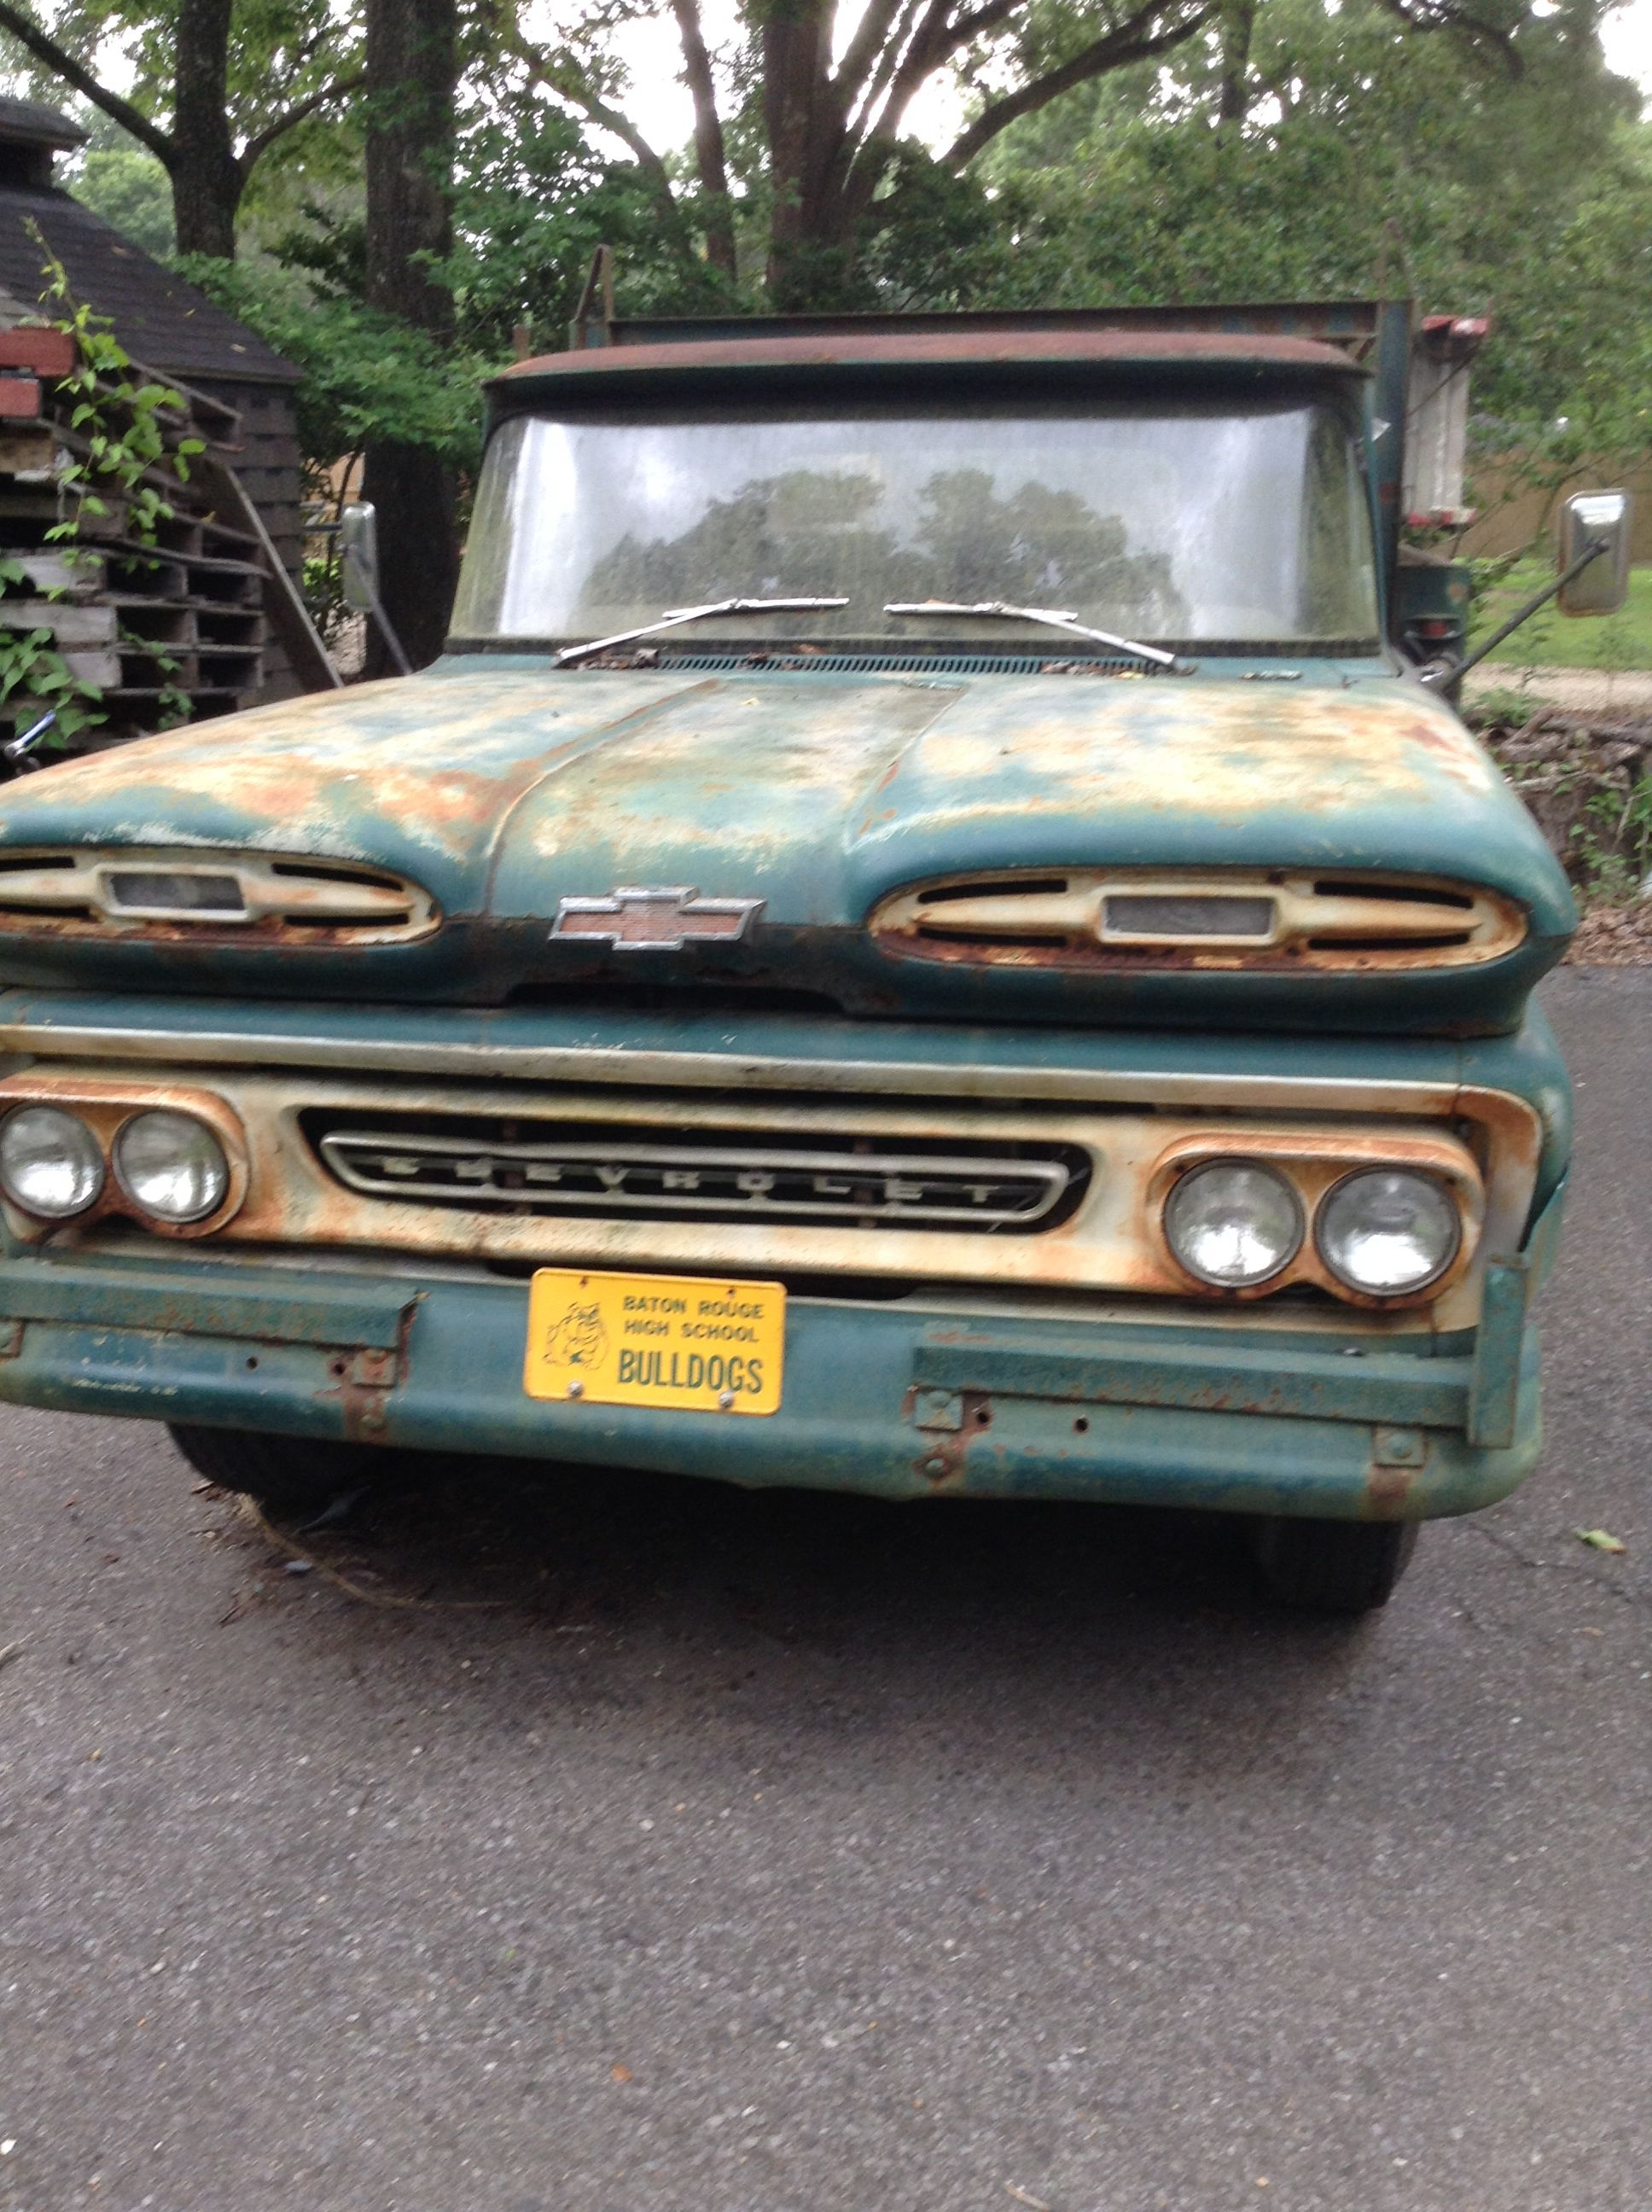 My Dads 1961 Chevy 1 Ton Pickup He Is The Second Owner And This C10 Truck Has Just Shy Of One Million Miles On Original Motor